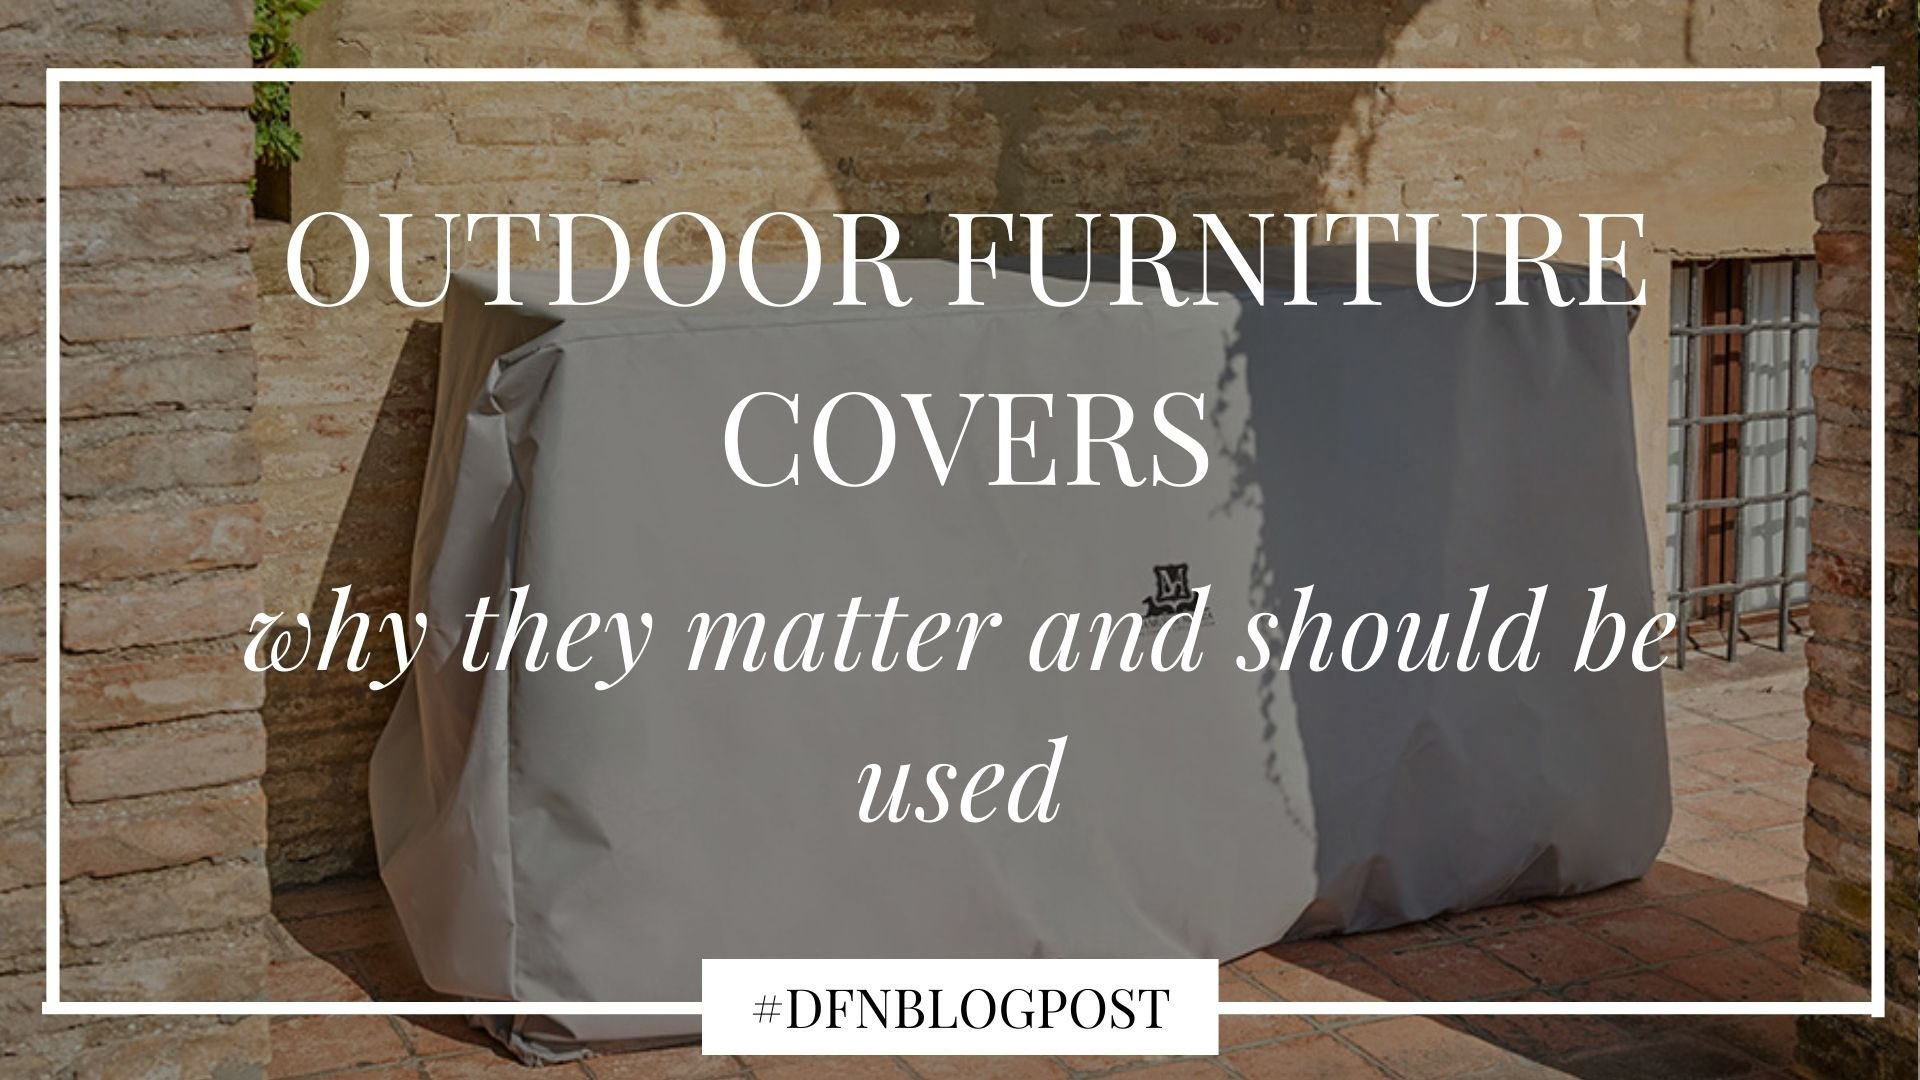 dfn-outdoor-furniture-cover-1